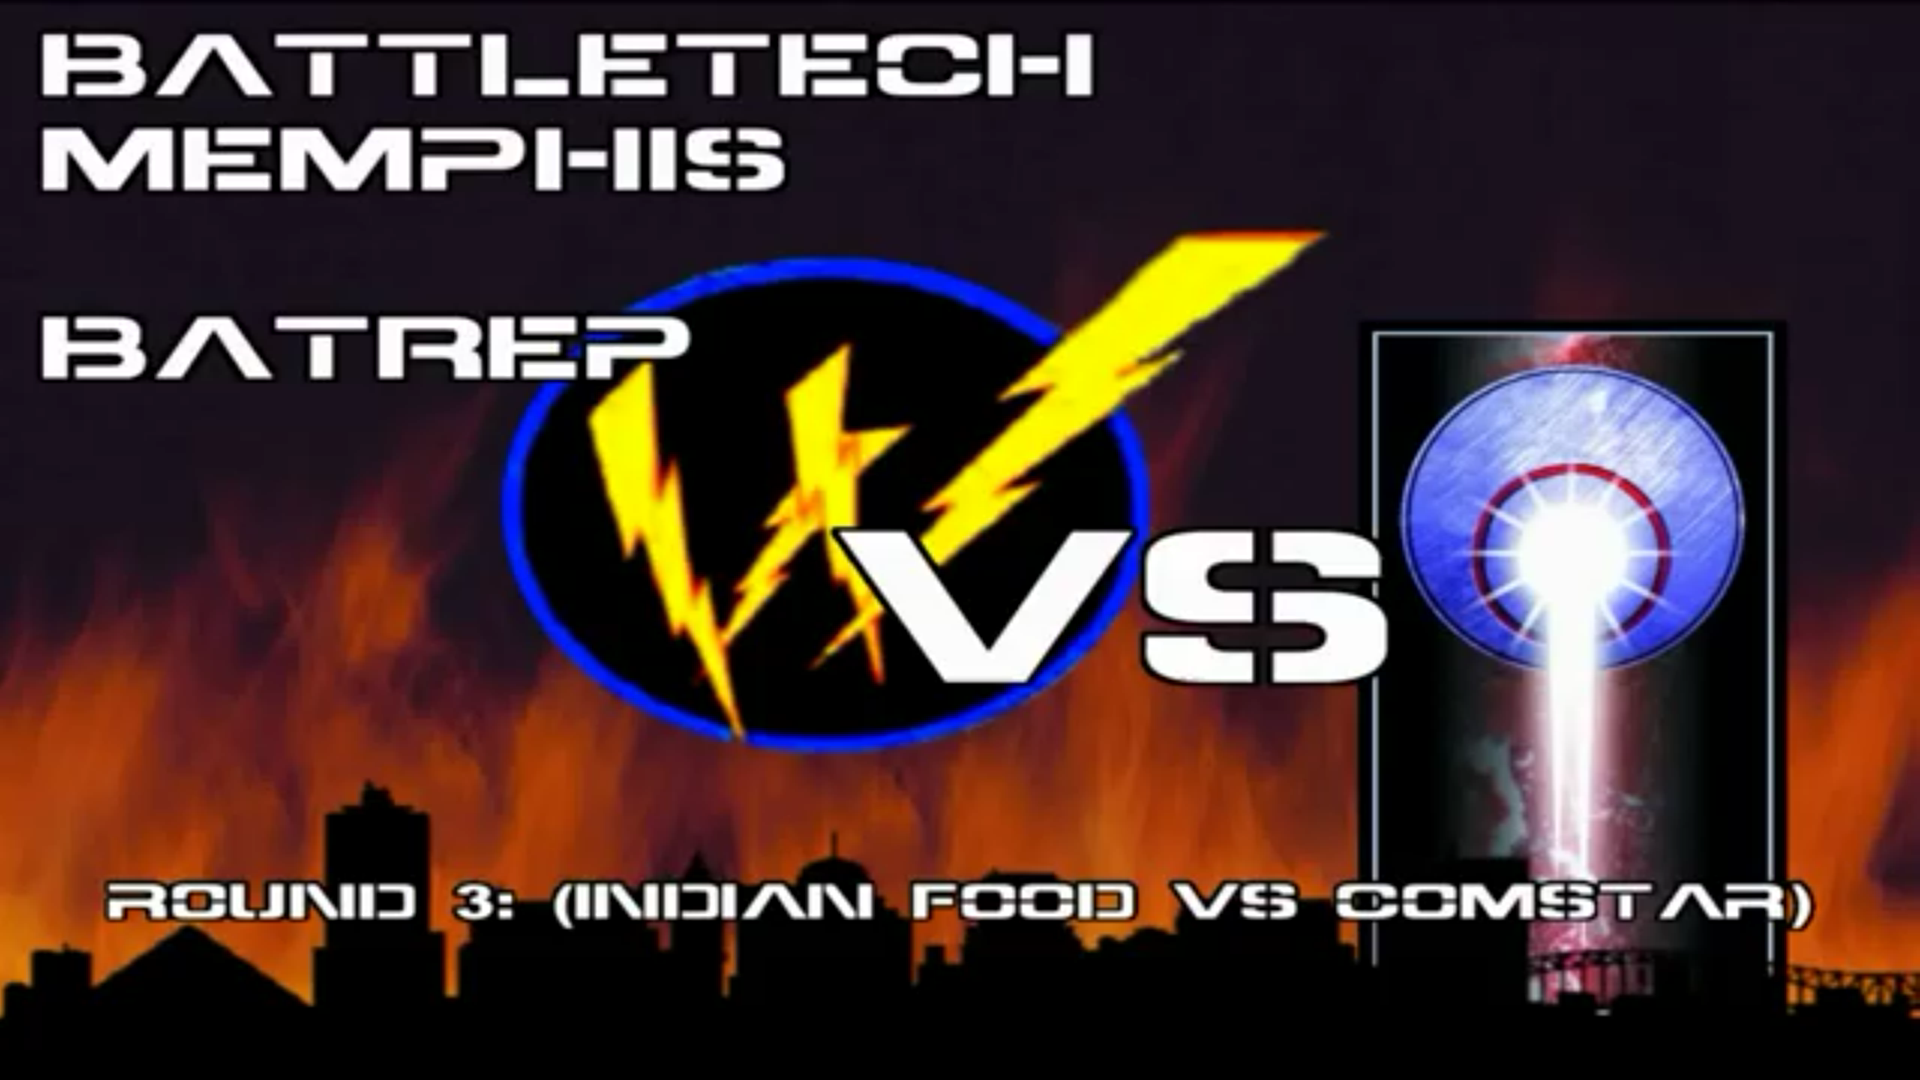 #6 Group W vs. Comstar Fight 3